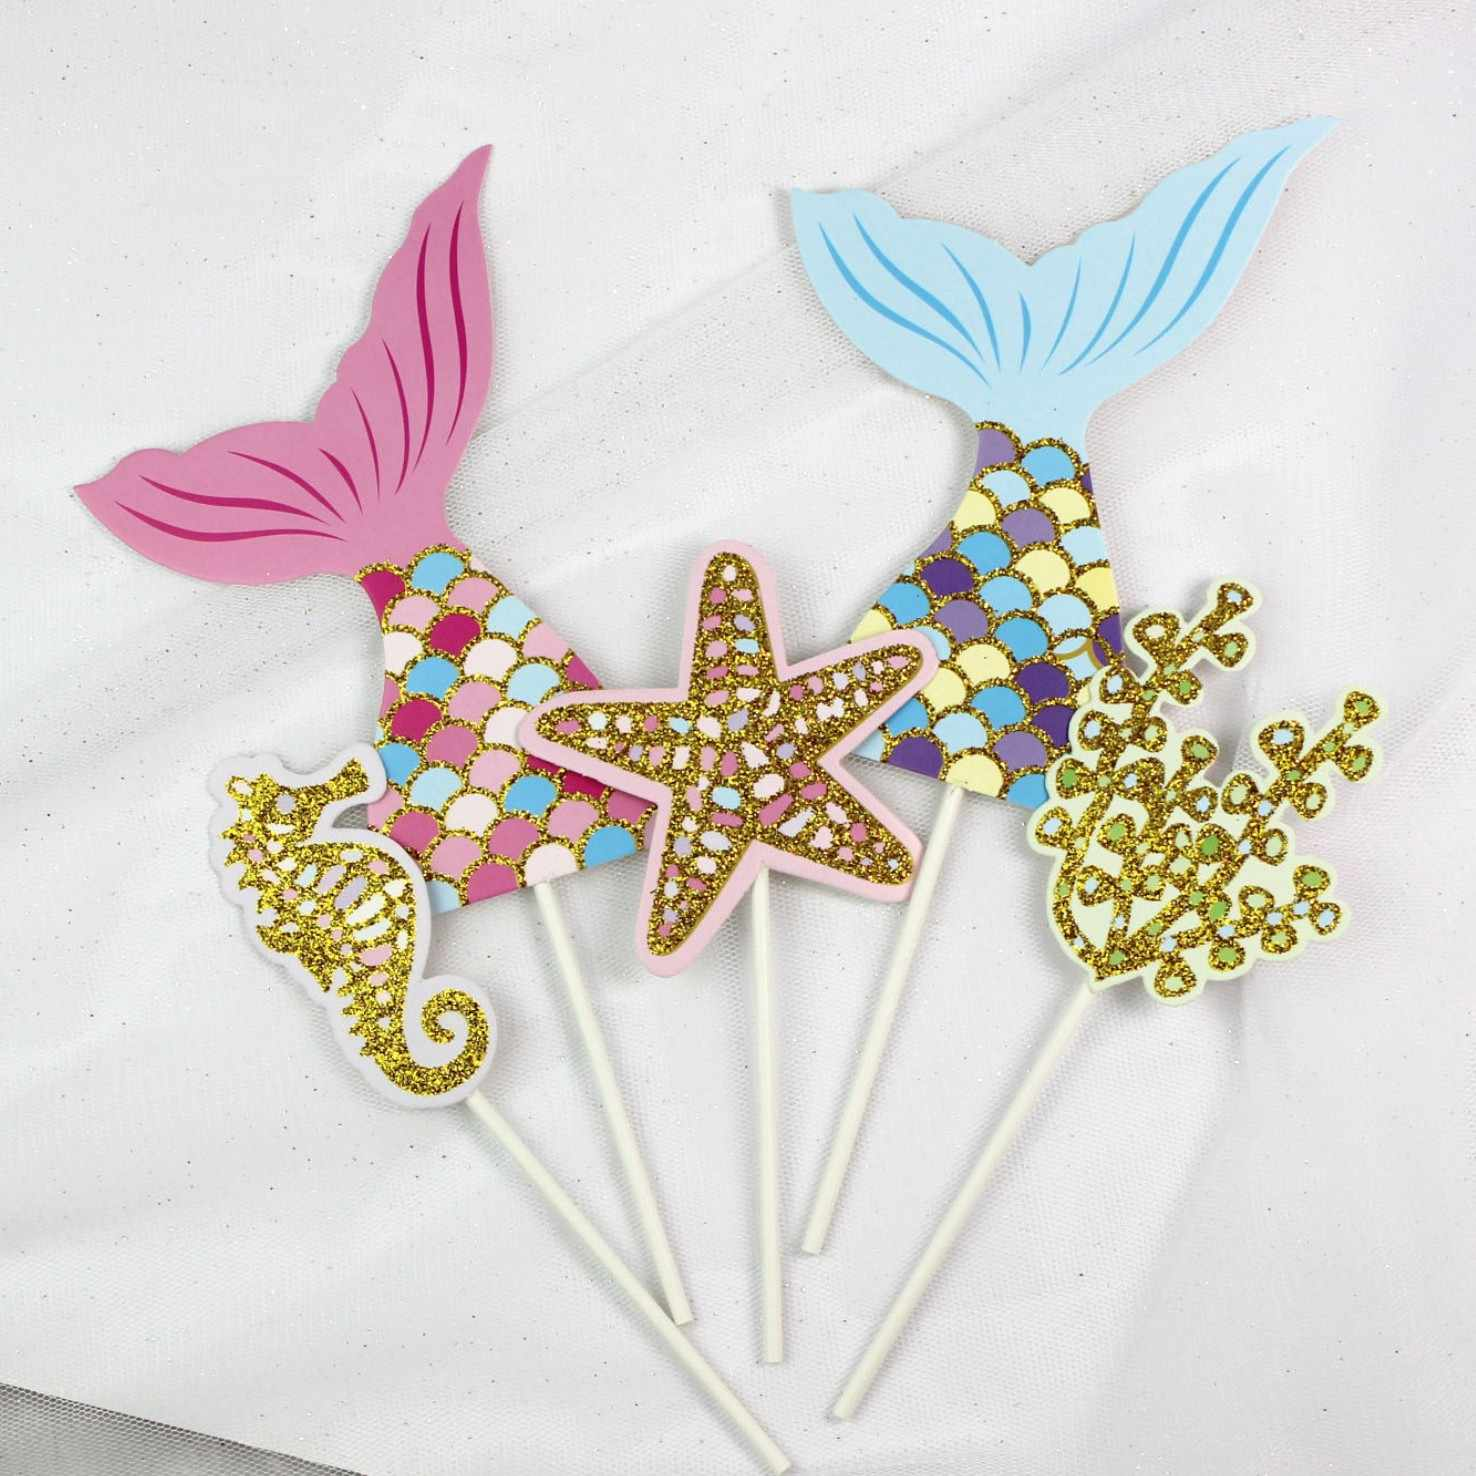 New Year's Products 1 Set Mermaid Theme Cake Decoration Birthday Party Decorations Kids Baby Shower Mermaid Party Home Decor. Q